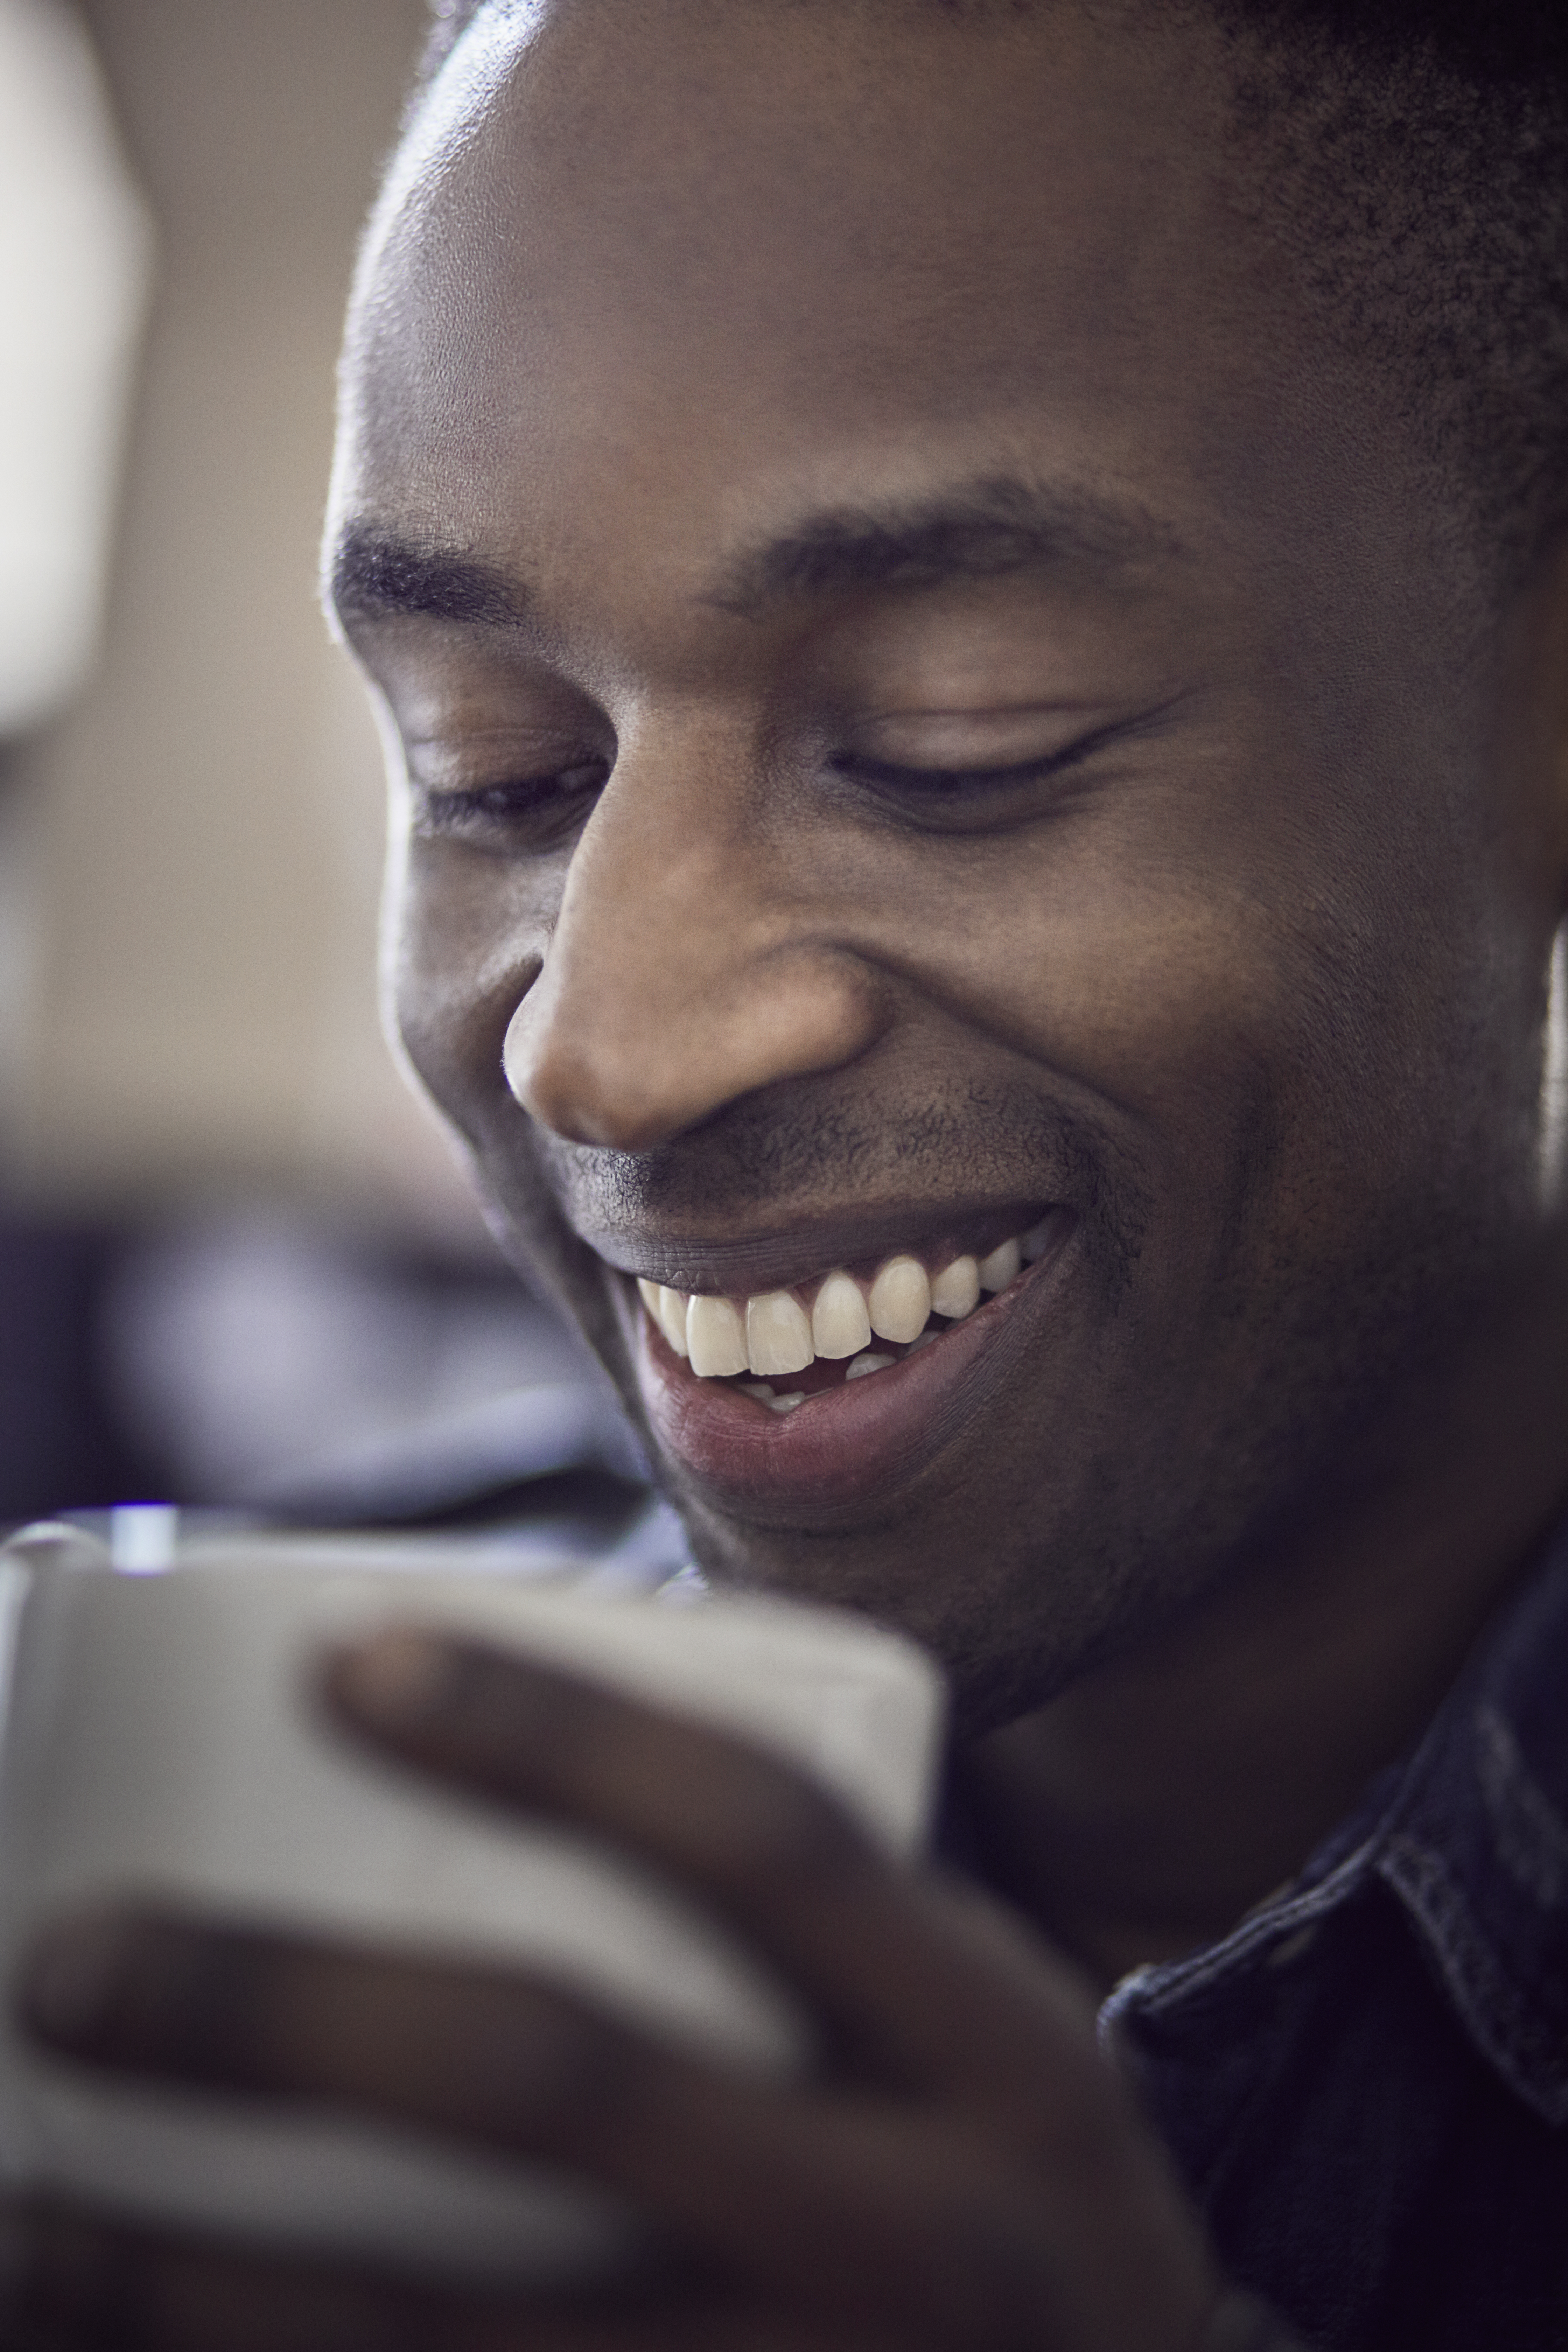 close-up portrait of a man with a coffee cup